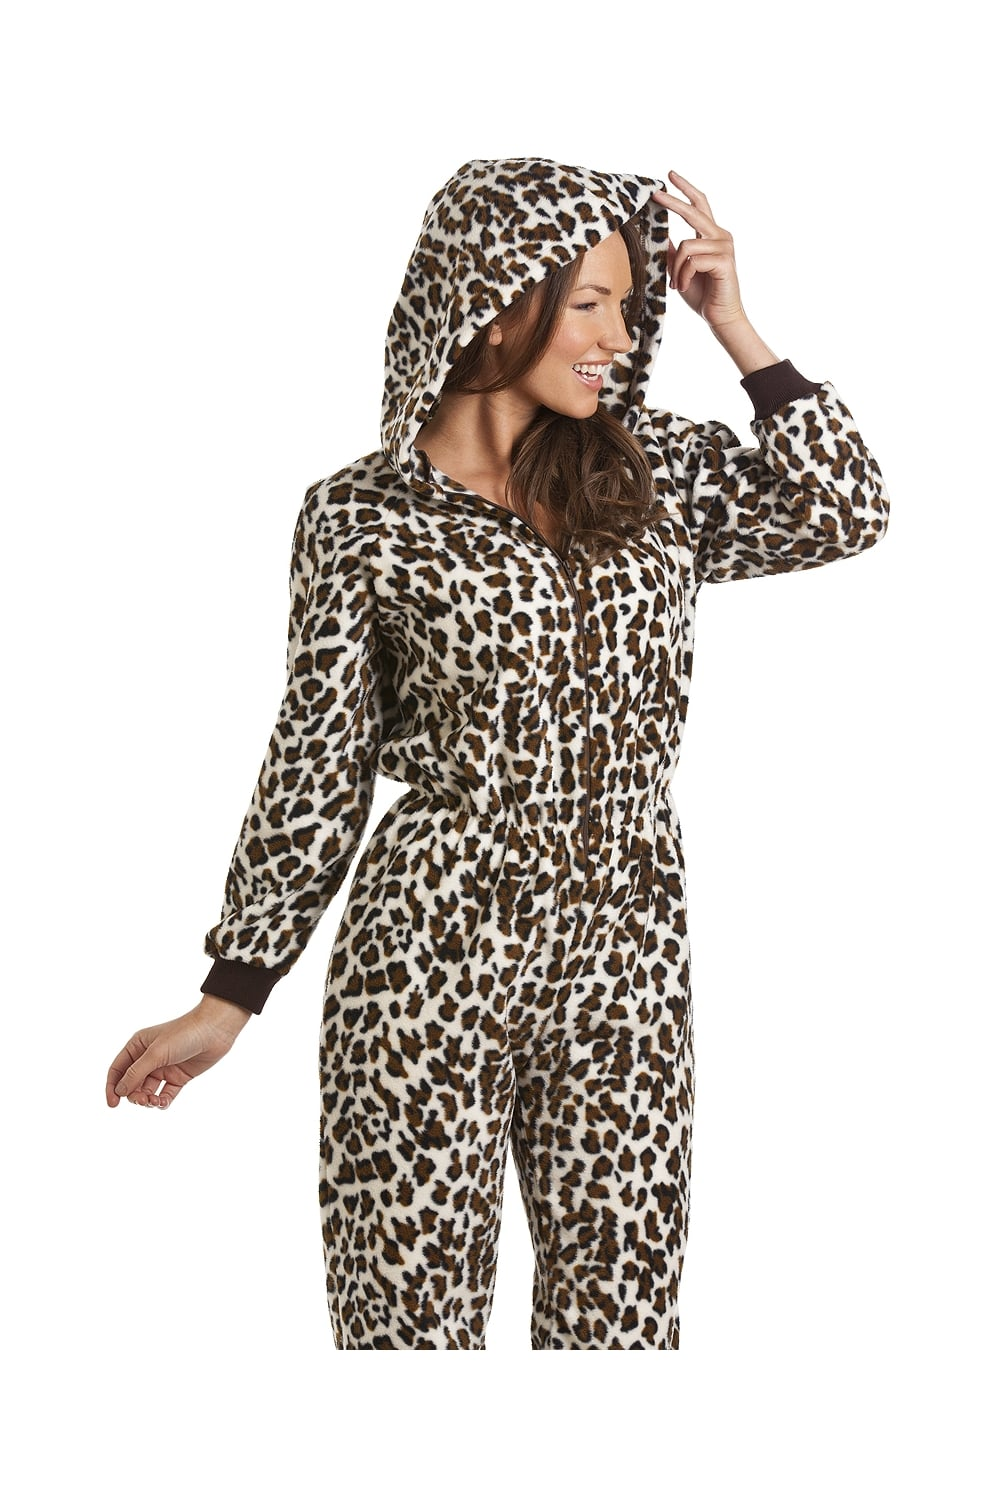 f6303f734d Camille Womens Luxury Brown Snow Leopard Print Hooded All In One Onesie  Pyjama